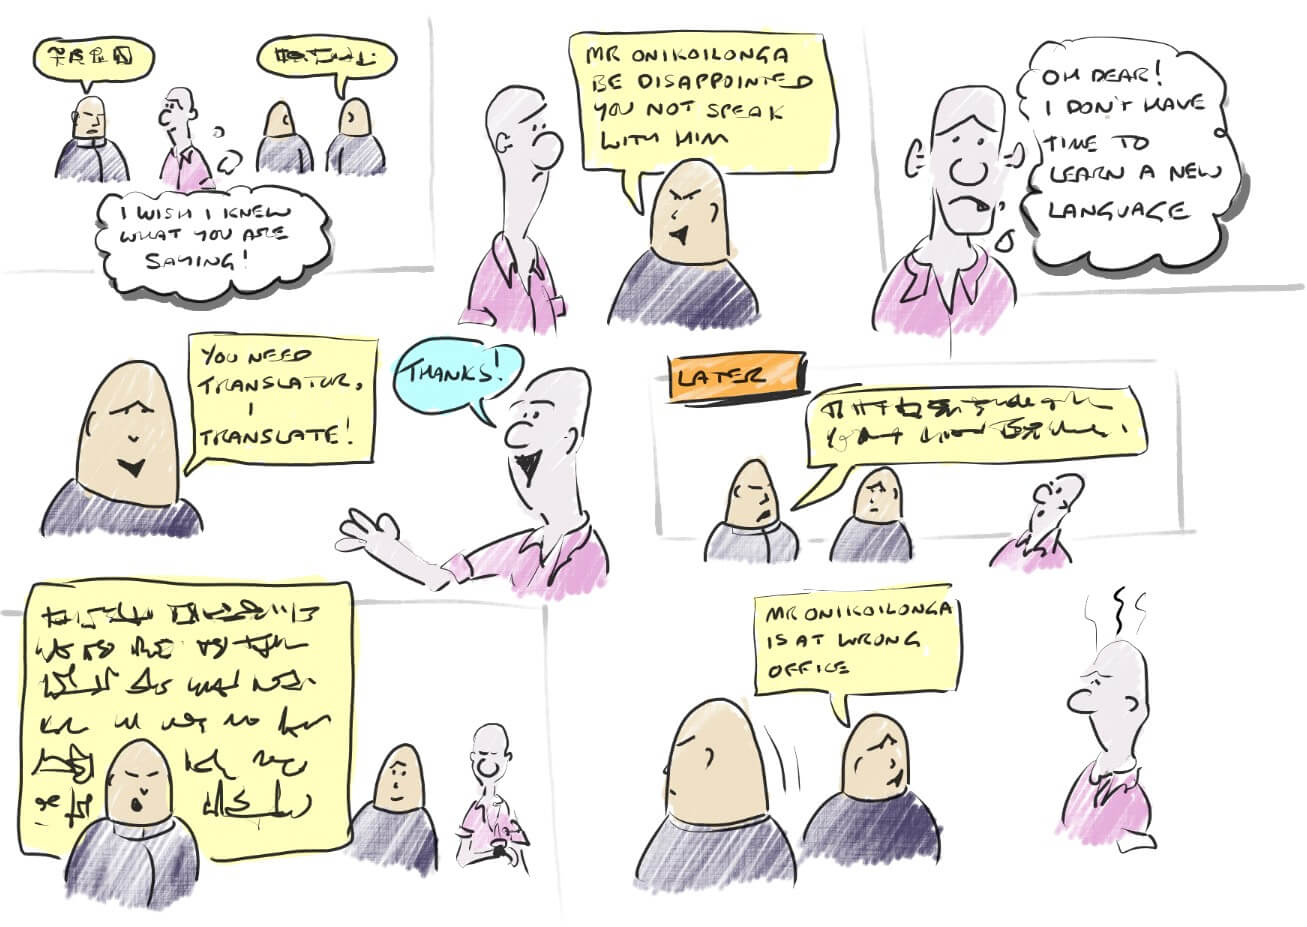 storyboard cartoon by the author of how translation doesn't always give us our answer